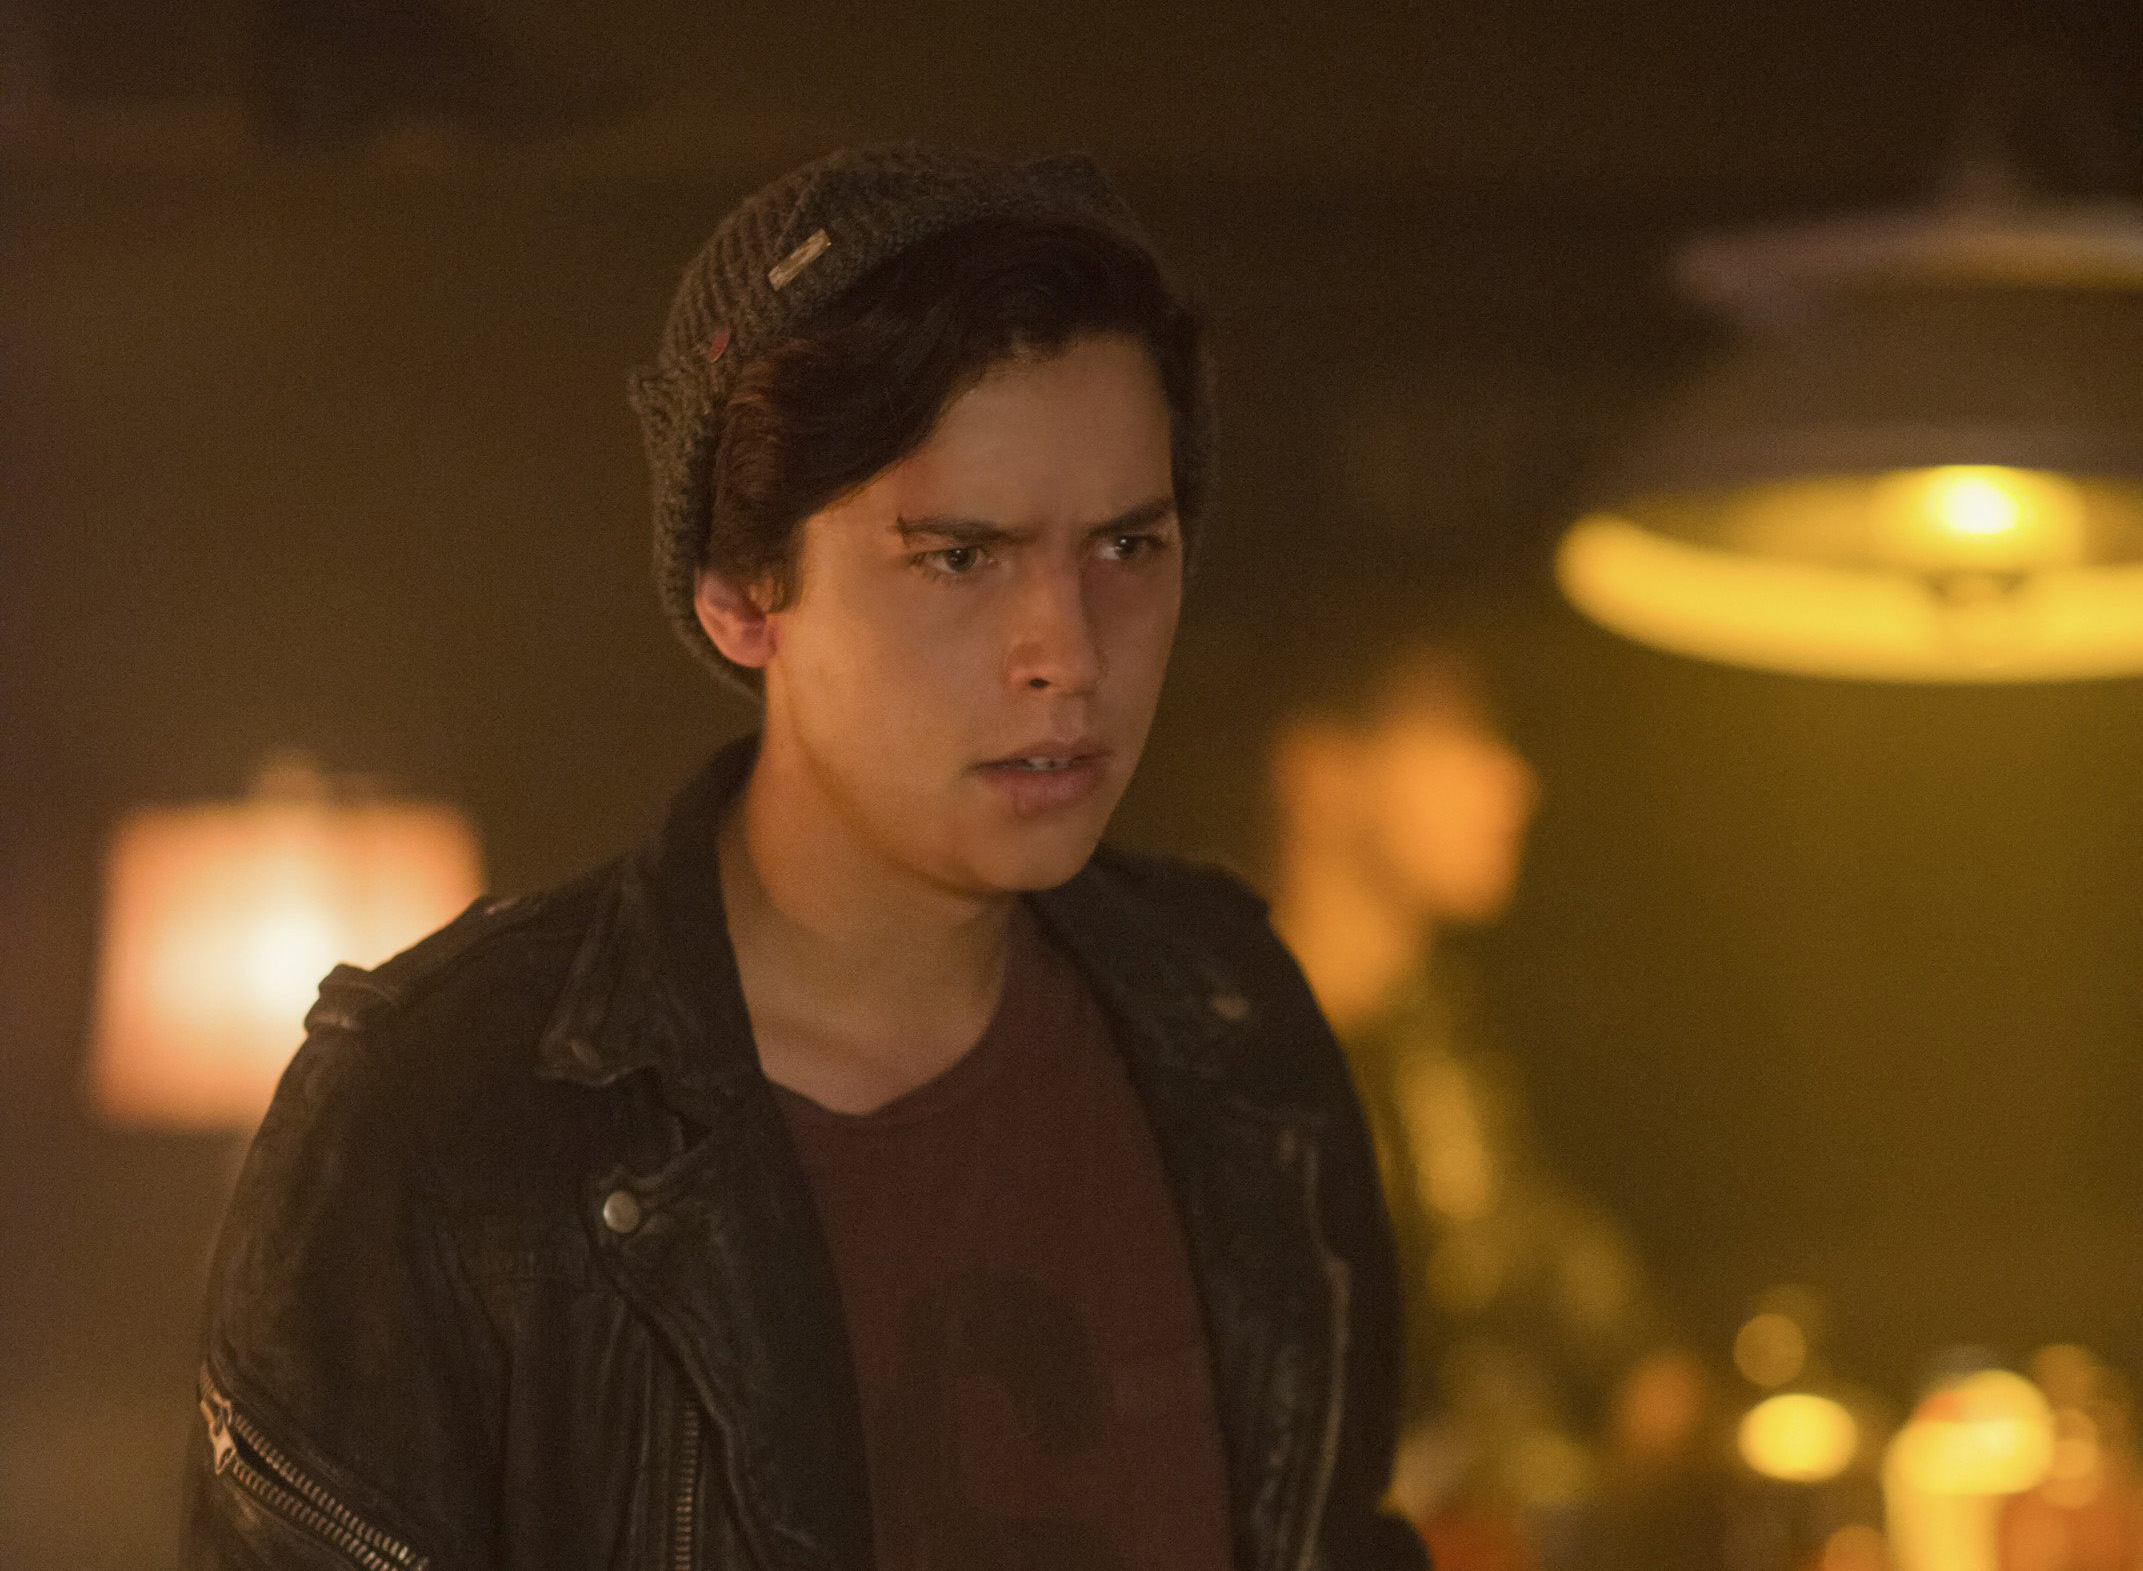 riverdale jughead looking angry with cut on face